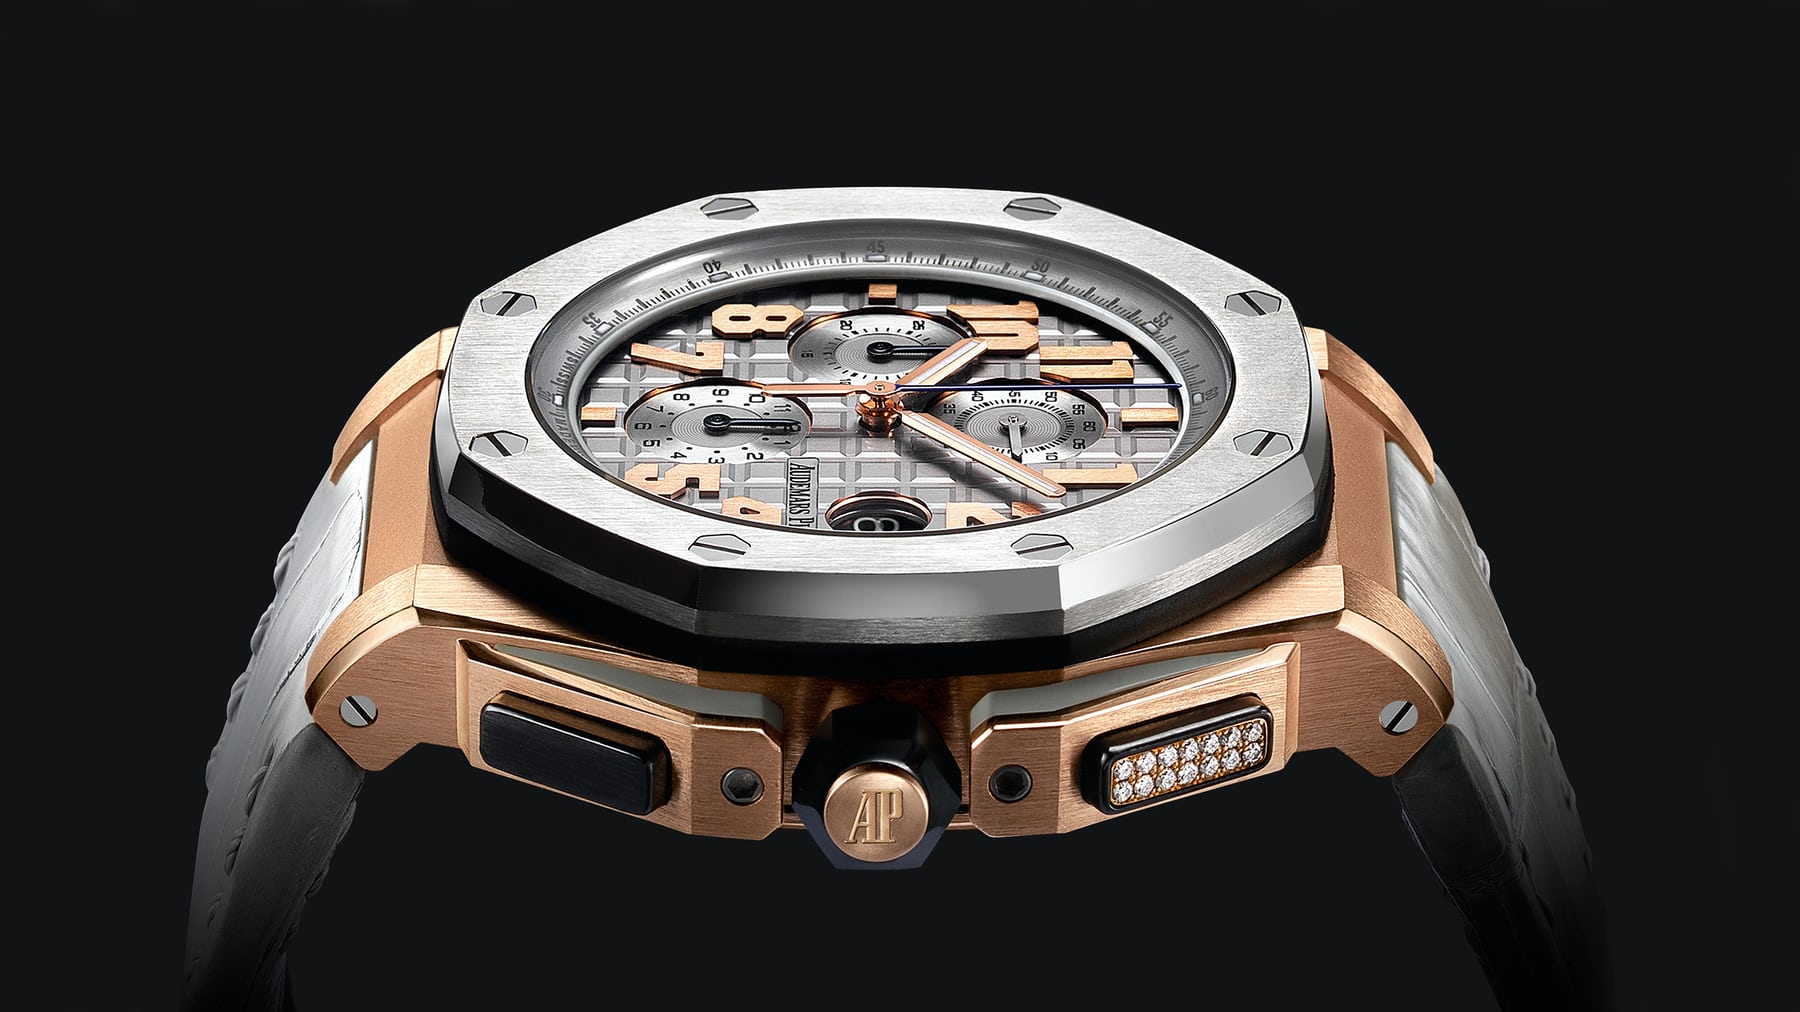 f9f1f05f7abf Introducing The Audemars Piguet Royal Oak Offshore Chronograph LeBron James  (Details   Pricing) - HODINKEE